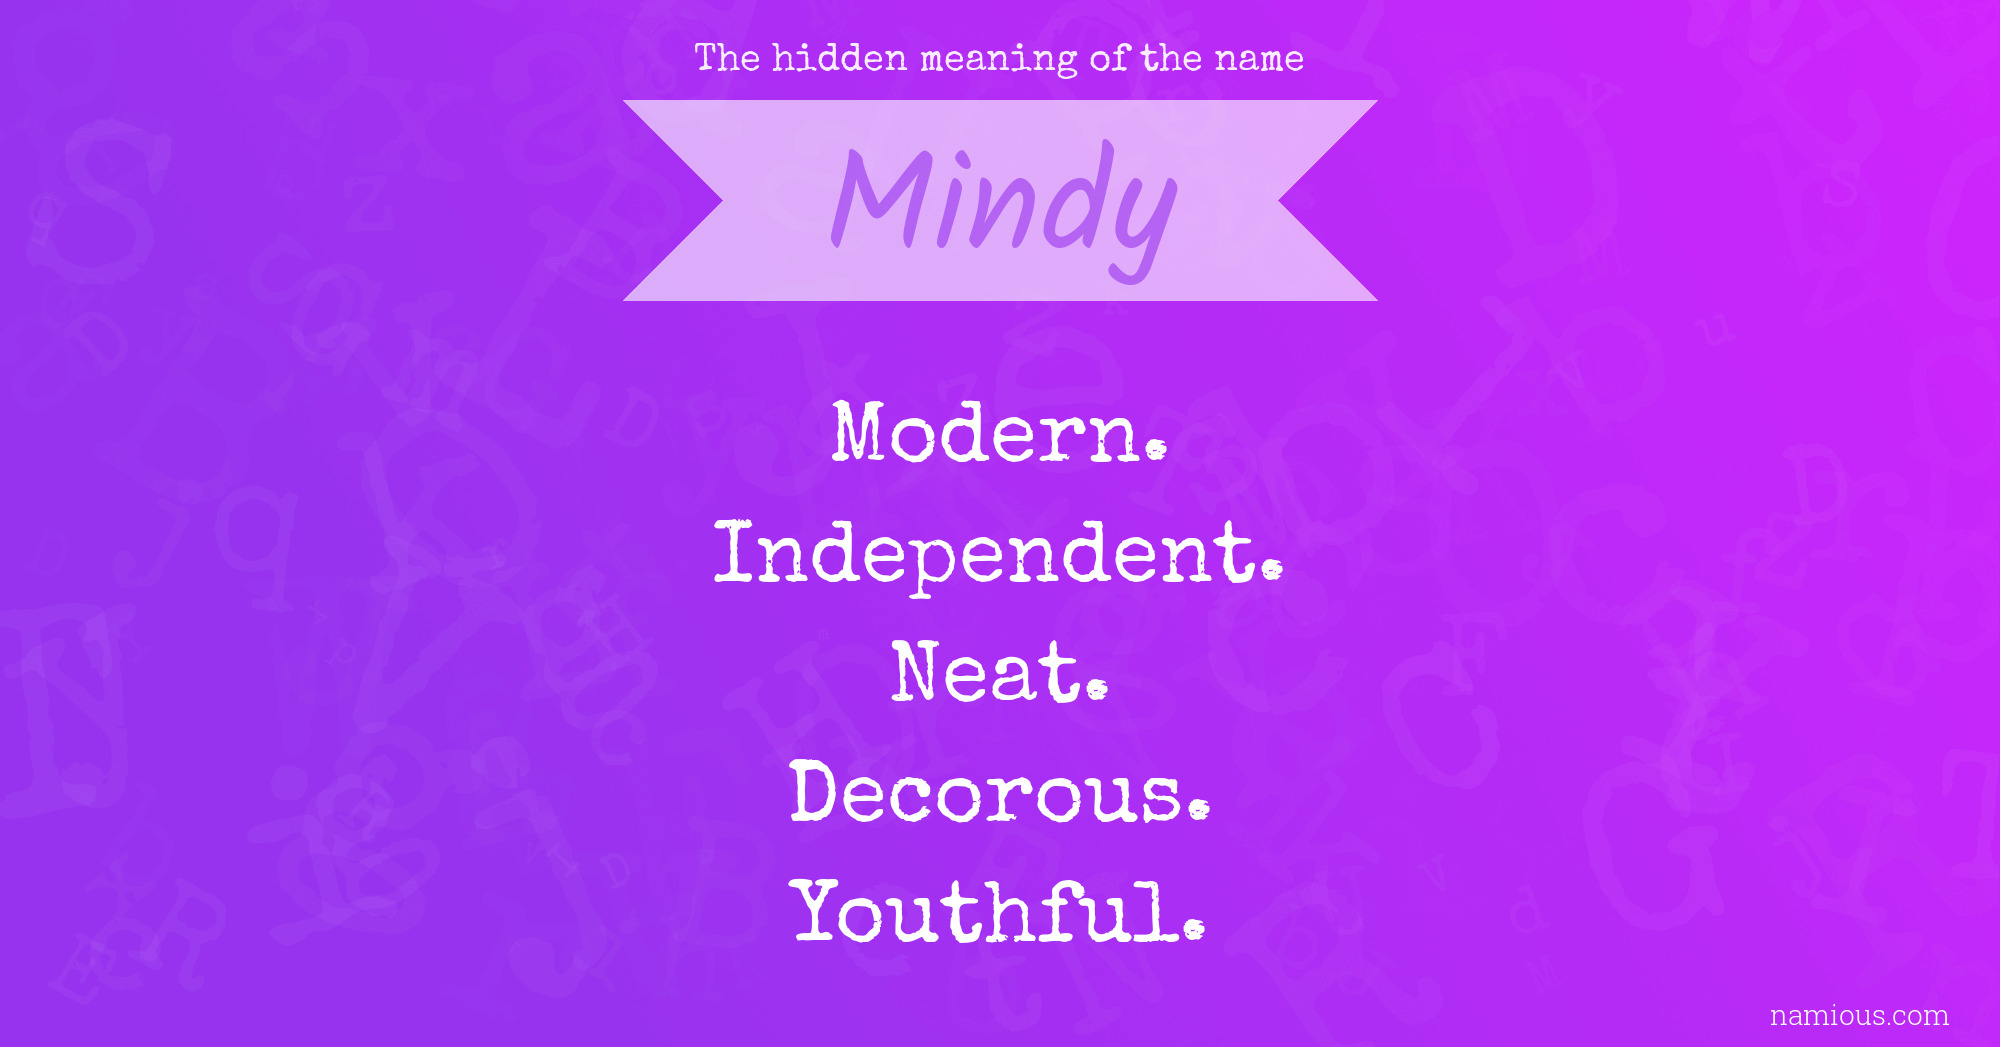 The hidden meaning of the name Mindy | Namious